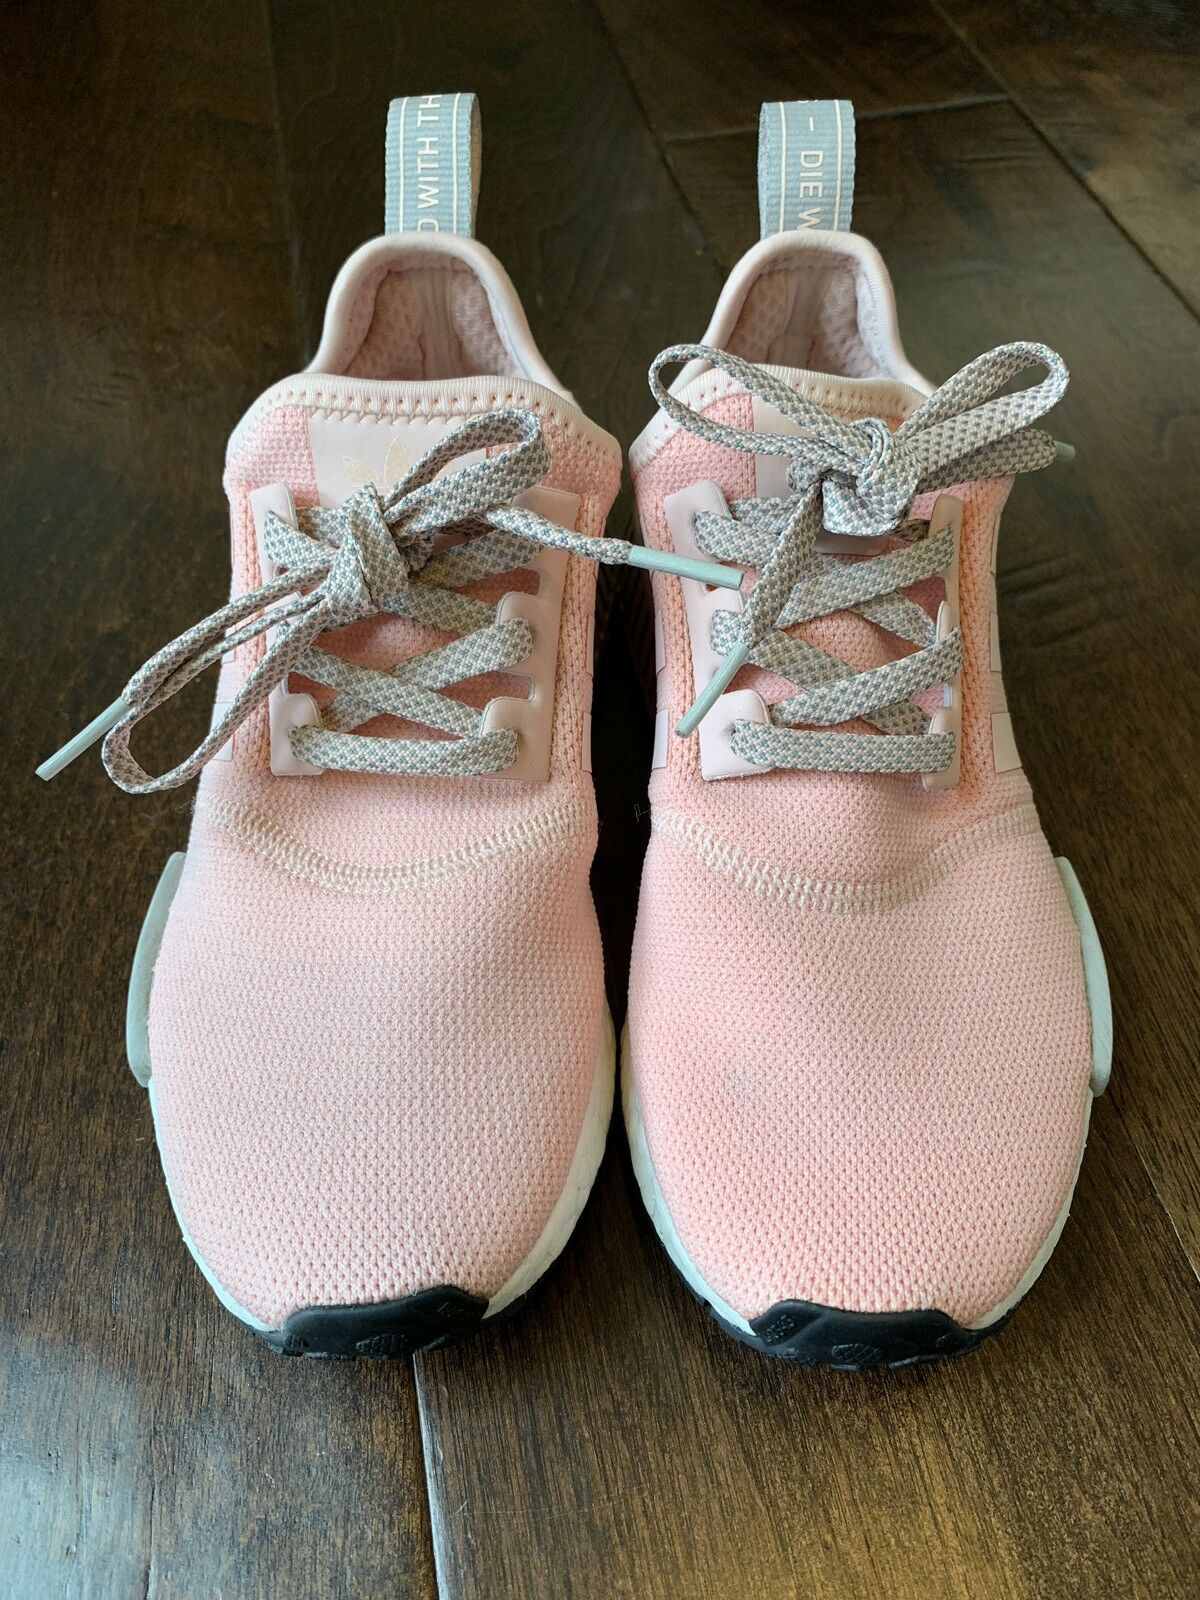 VNDS Adidas Adidas Adidas NMD R1 Vapour Pink Onix Grey Offspring BY3059 Size 6 Women's 2dd21c